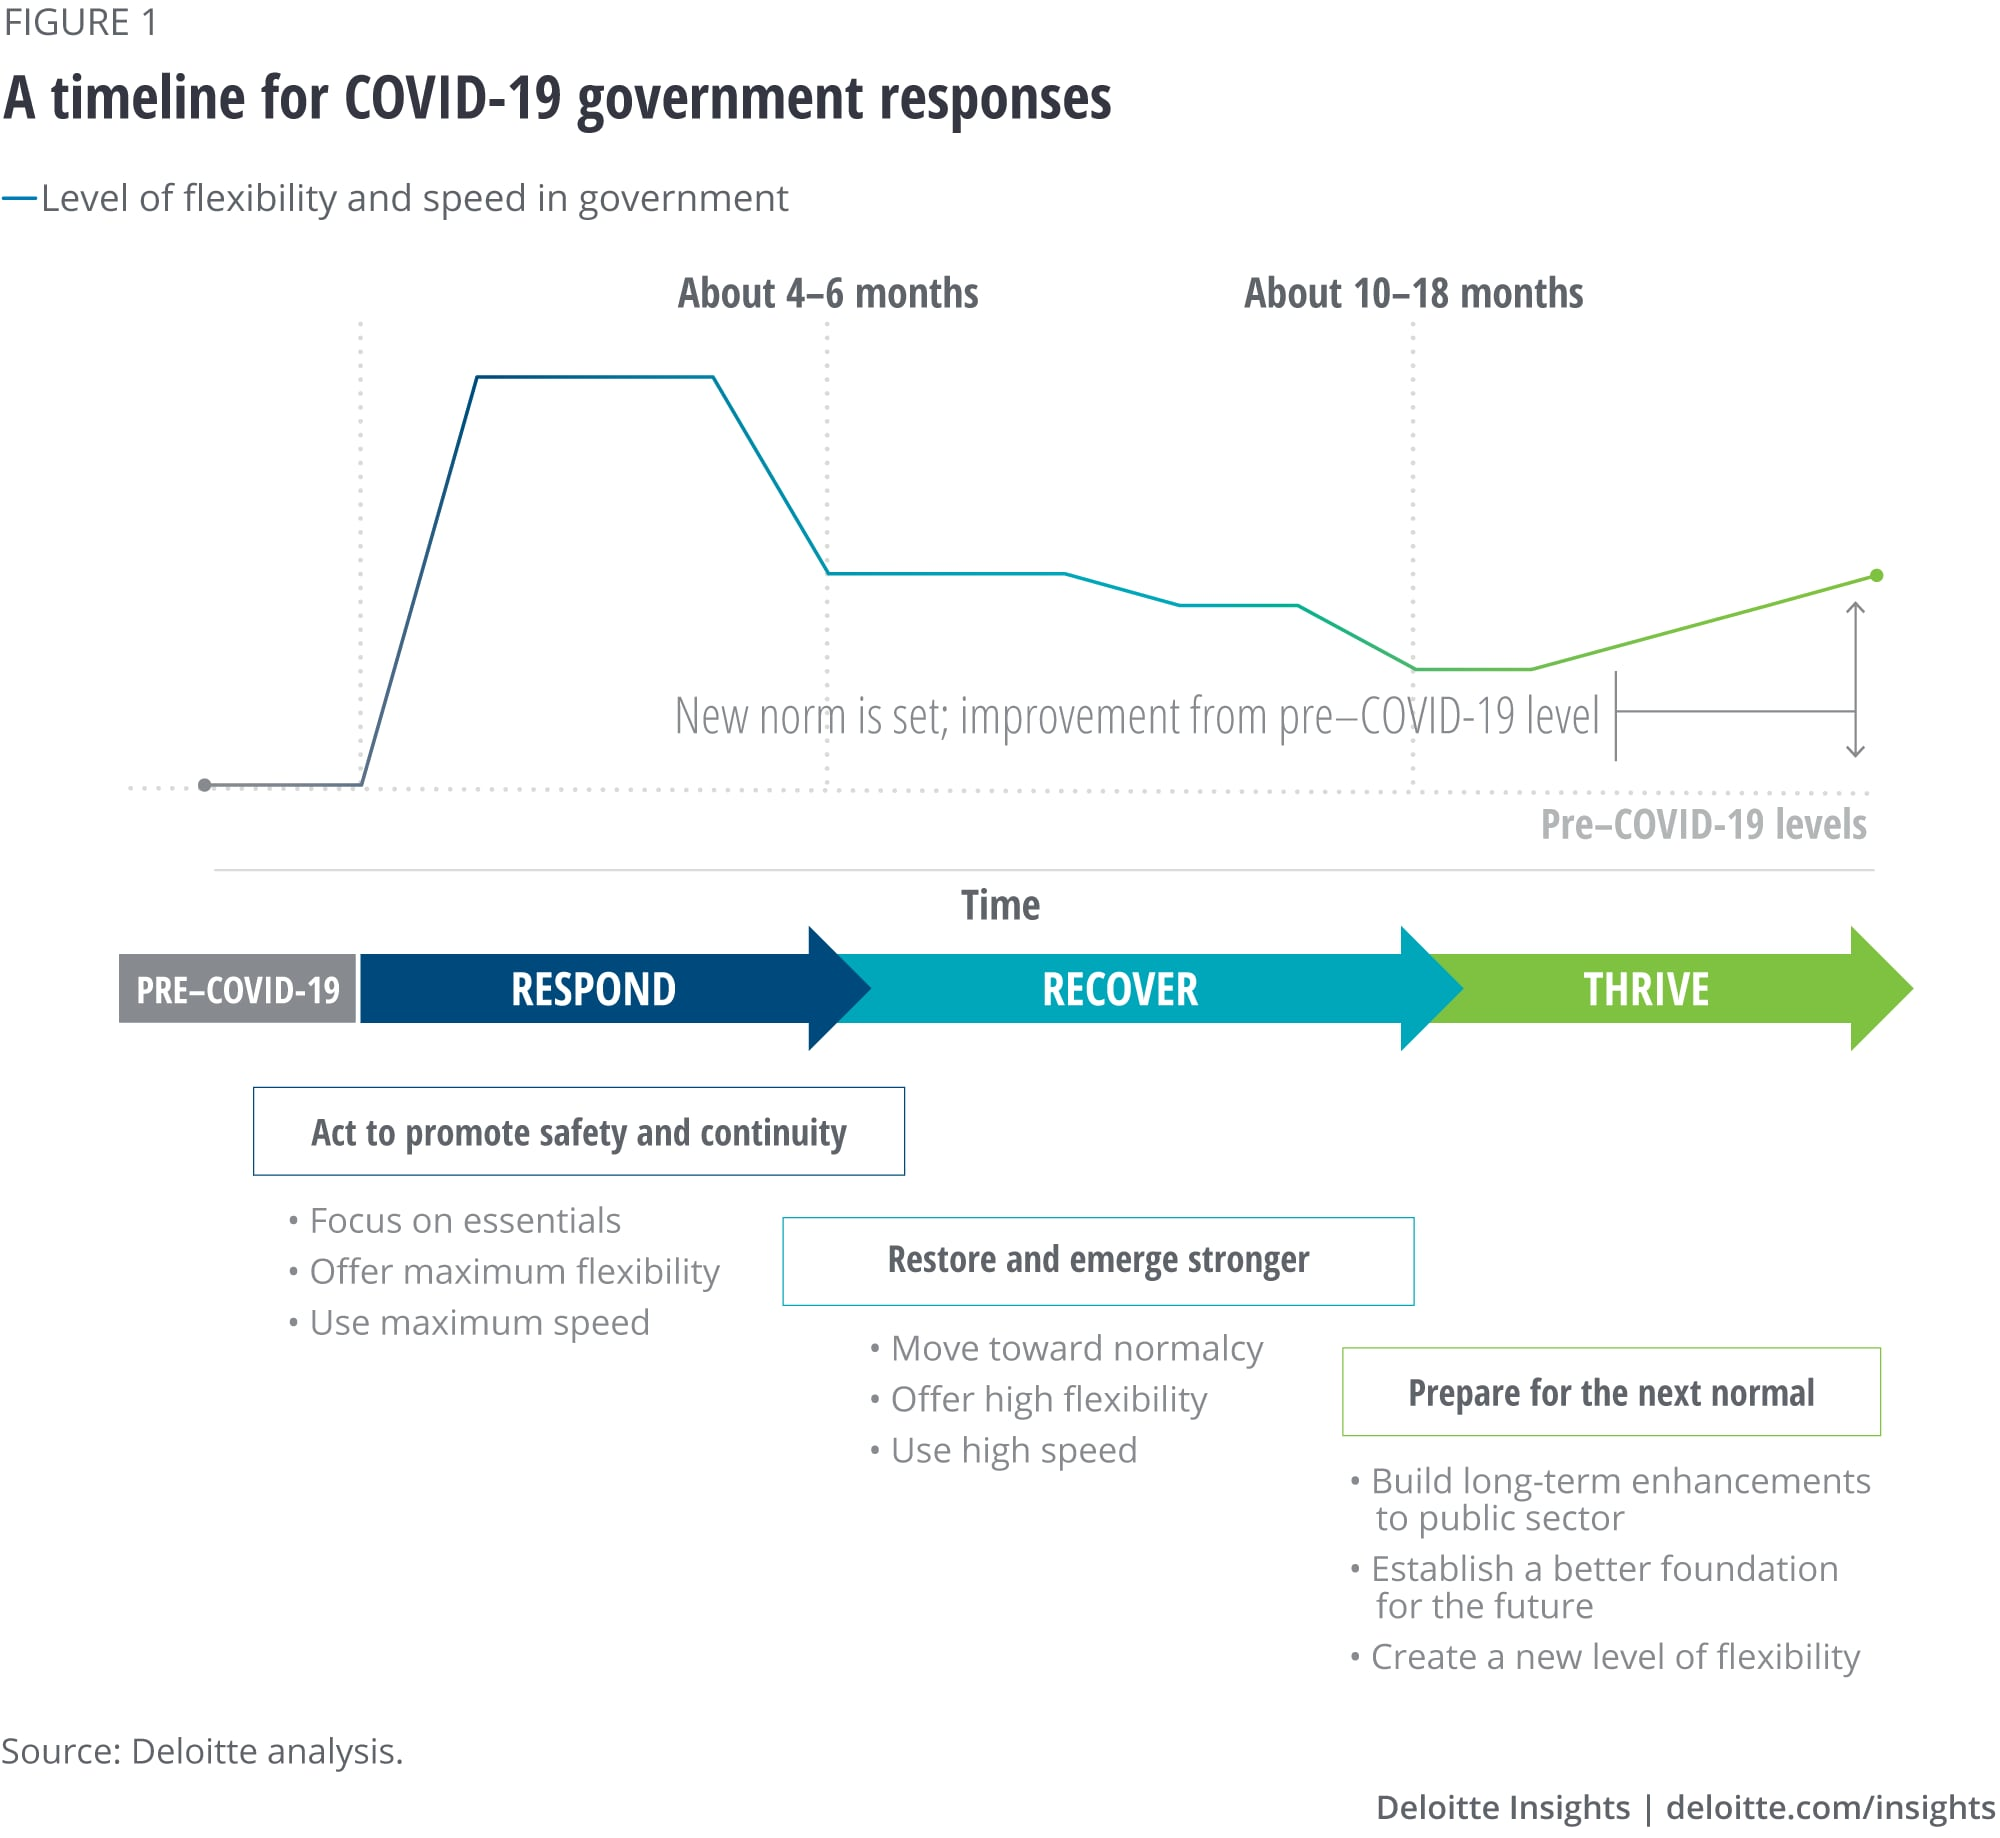 COVID-19 government response through time